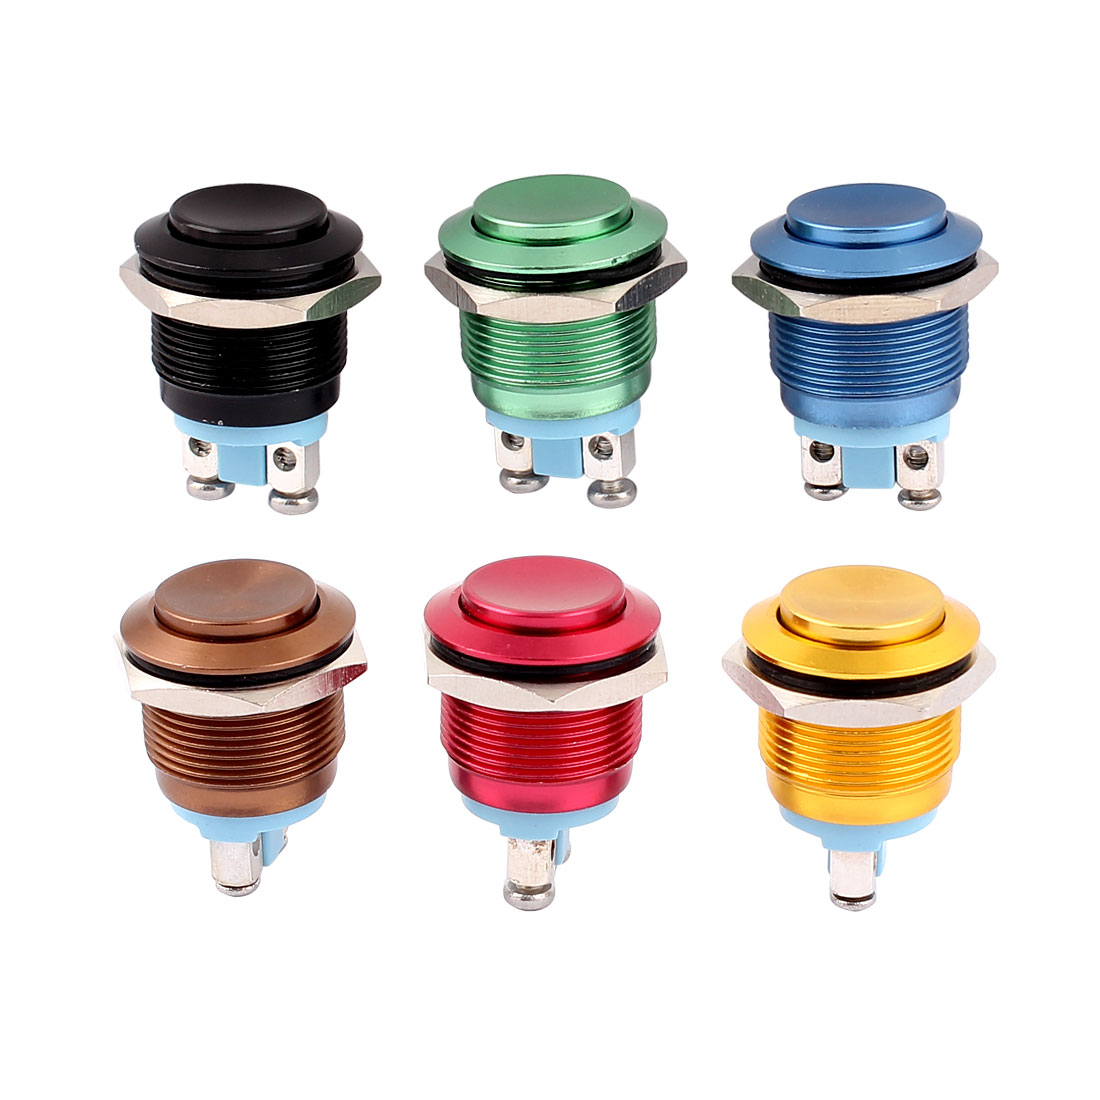 6Pcs AC 220V Black Brown Blue Red Green Yellow SPST Momentary Push Button Switch